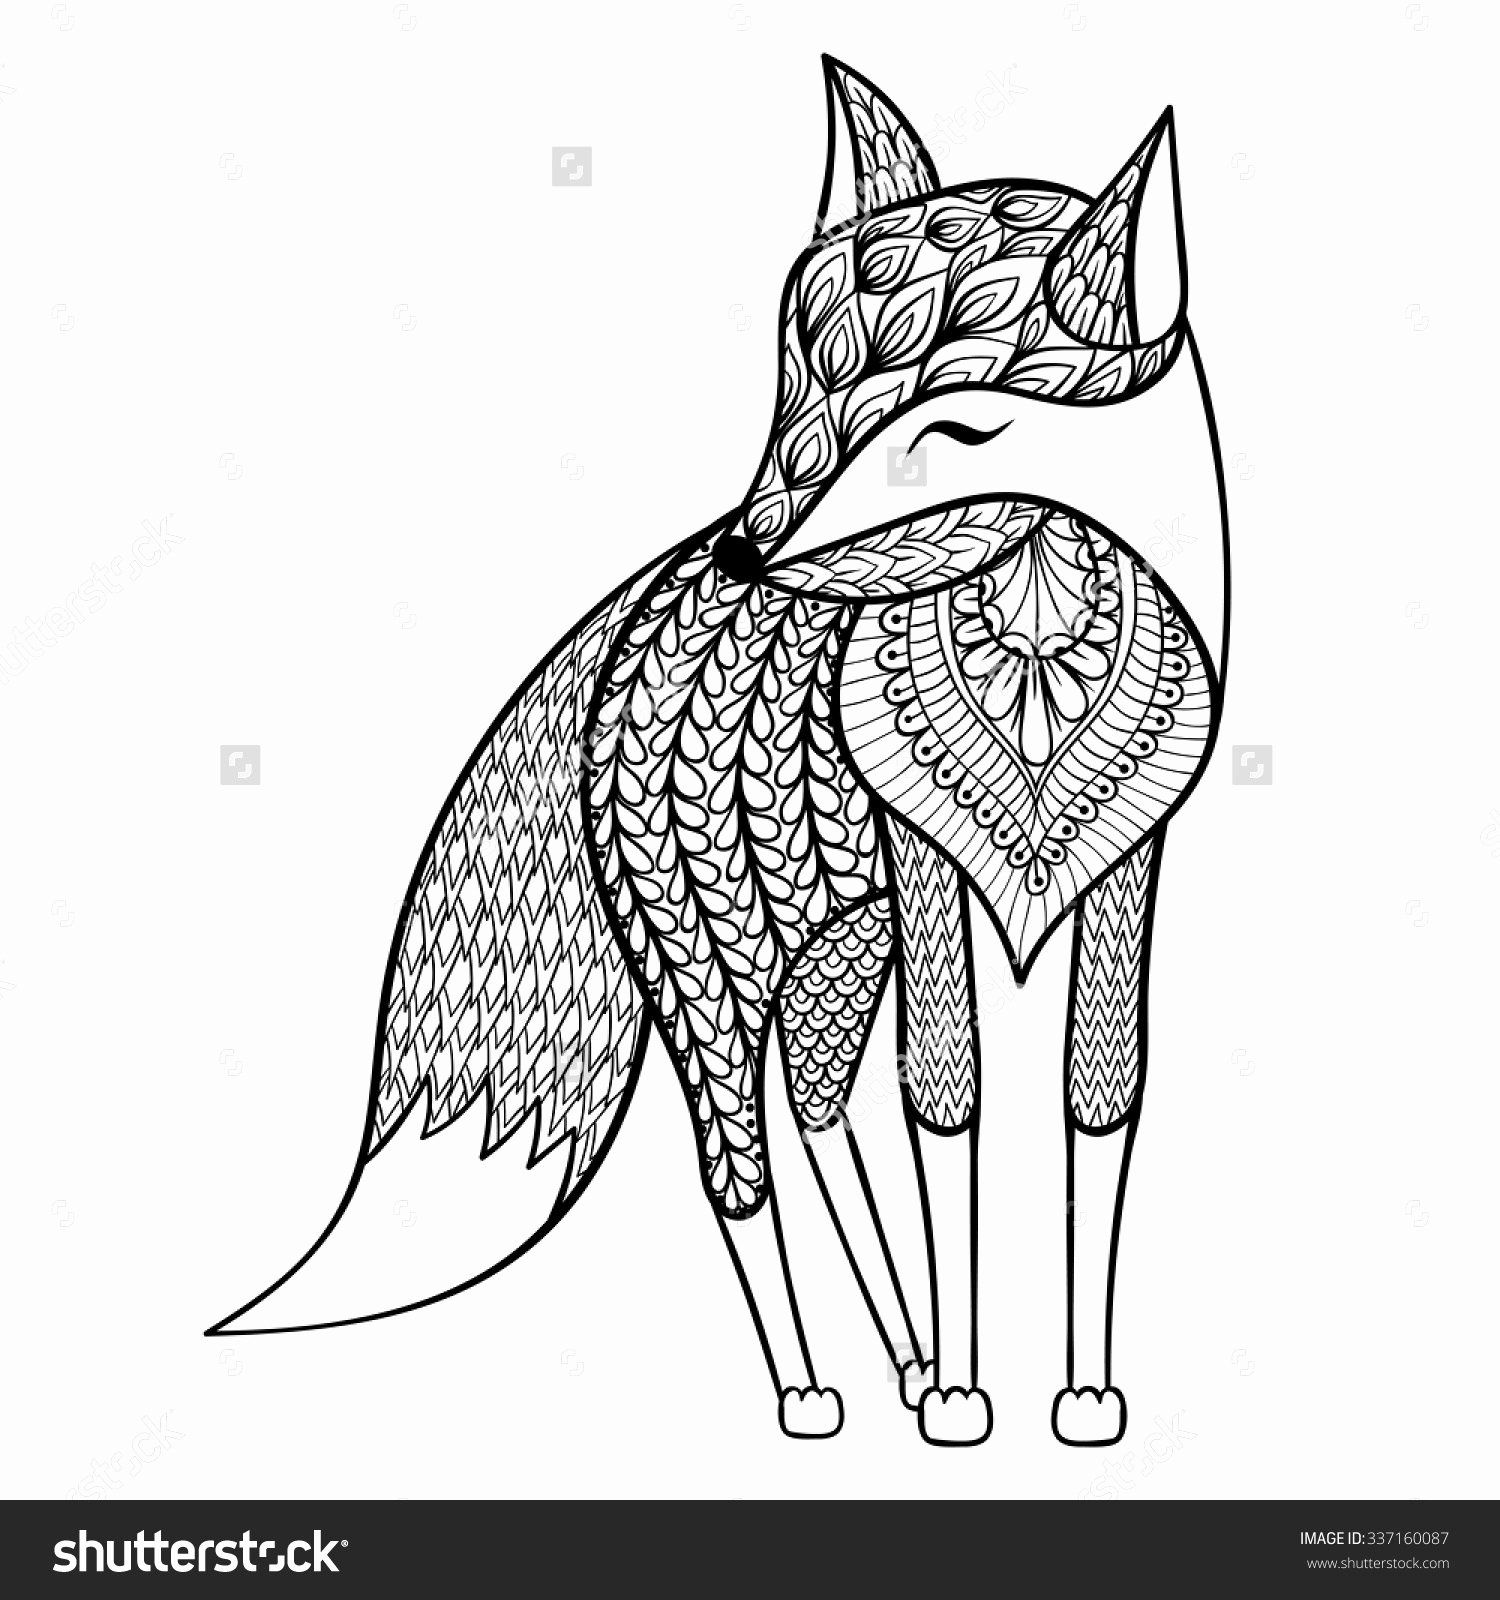 Cute Foxes Coloring Pages New Aˆs Fox Coloring Book In 2020 Fox Coloring Page Animal Coloring Pages Antistress Coloring